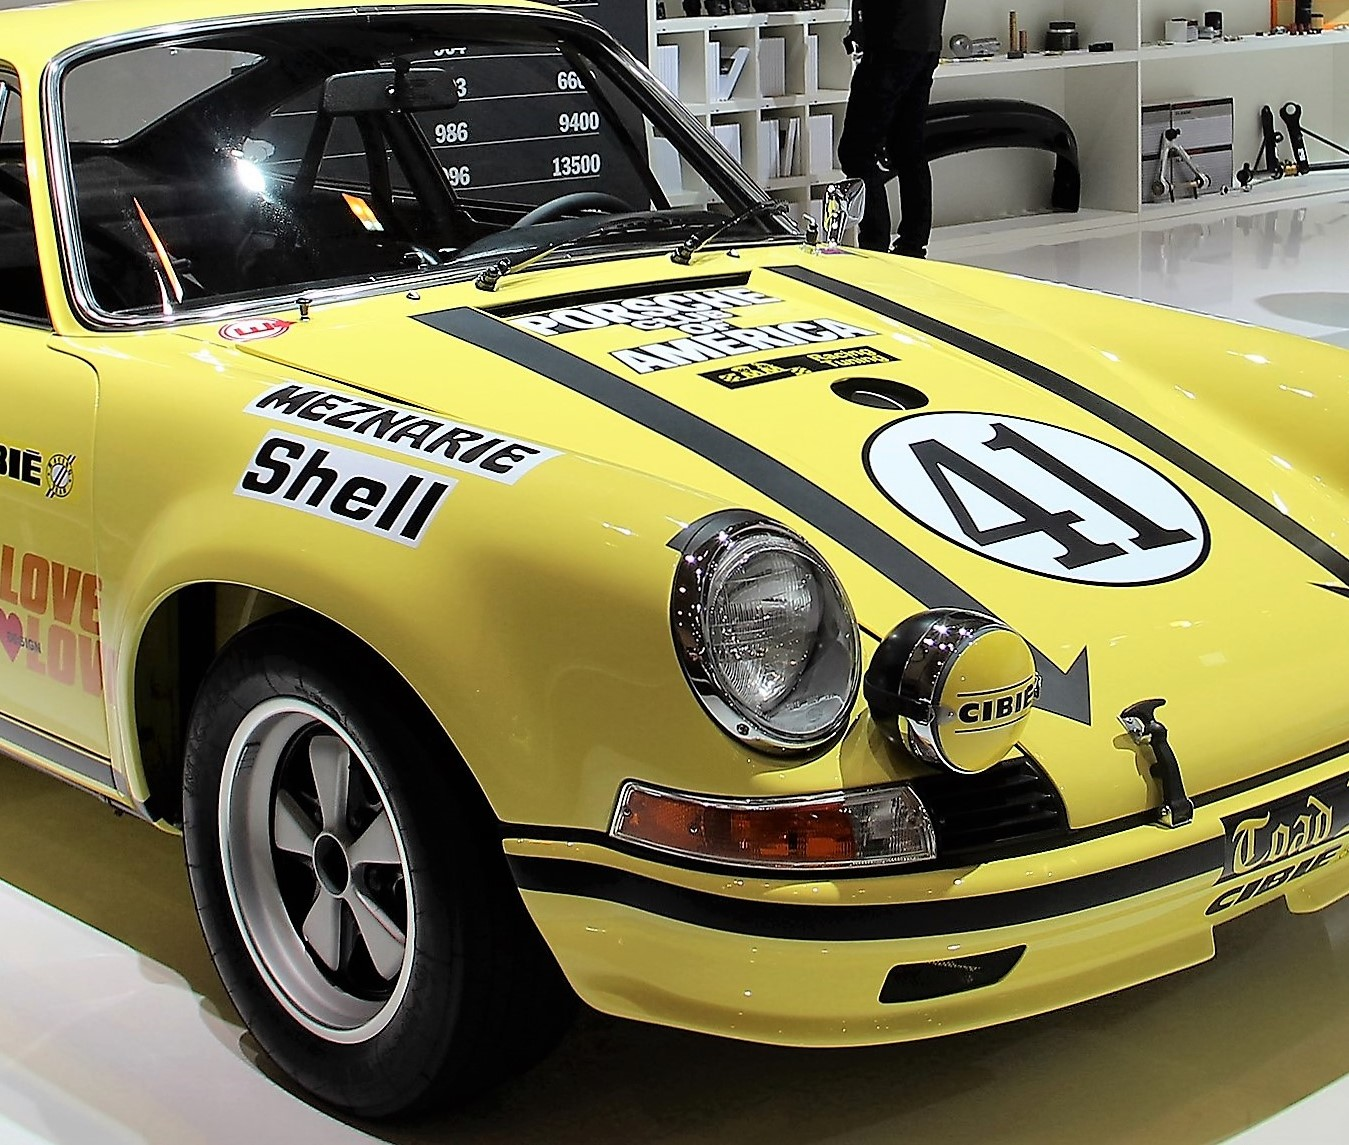 Prized 1972 Porsche 911 race car re-discovered, restored for display ...